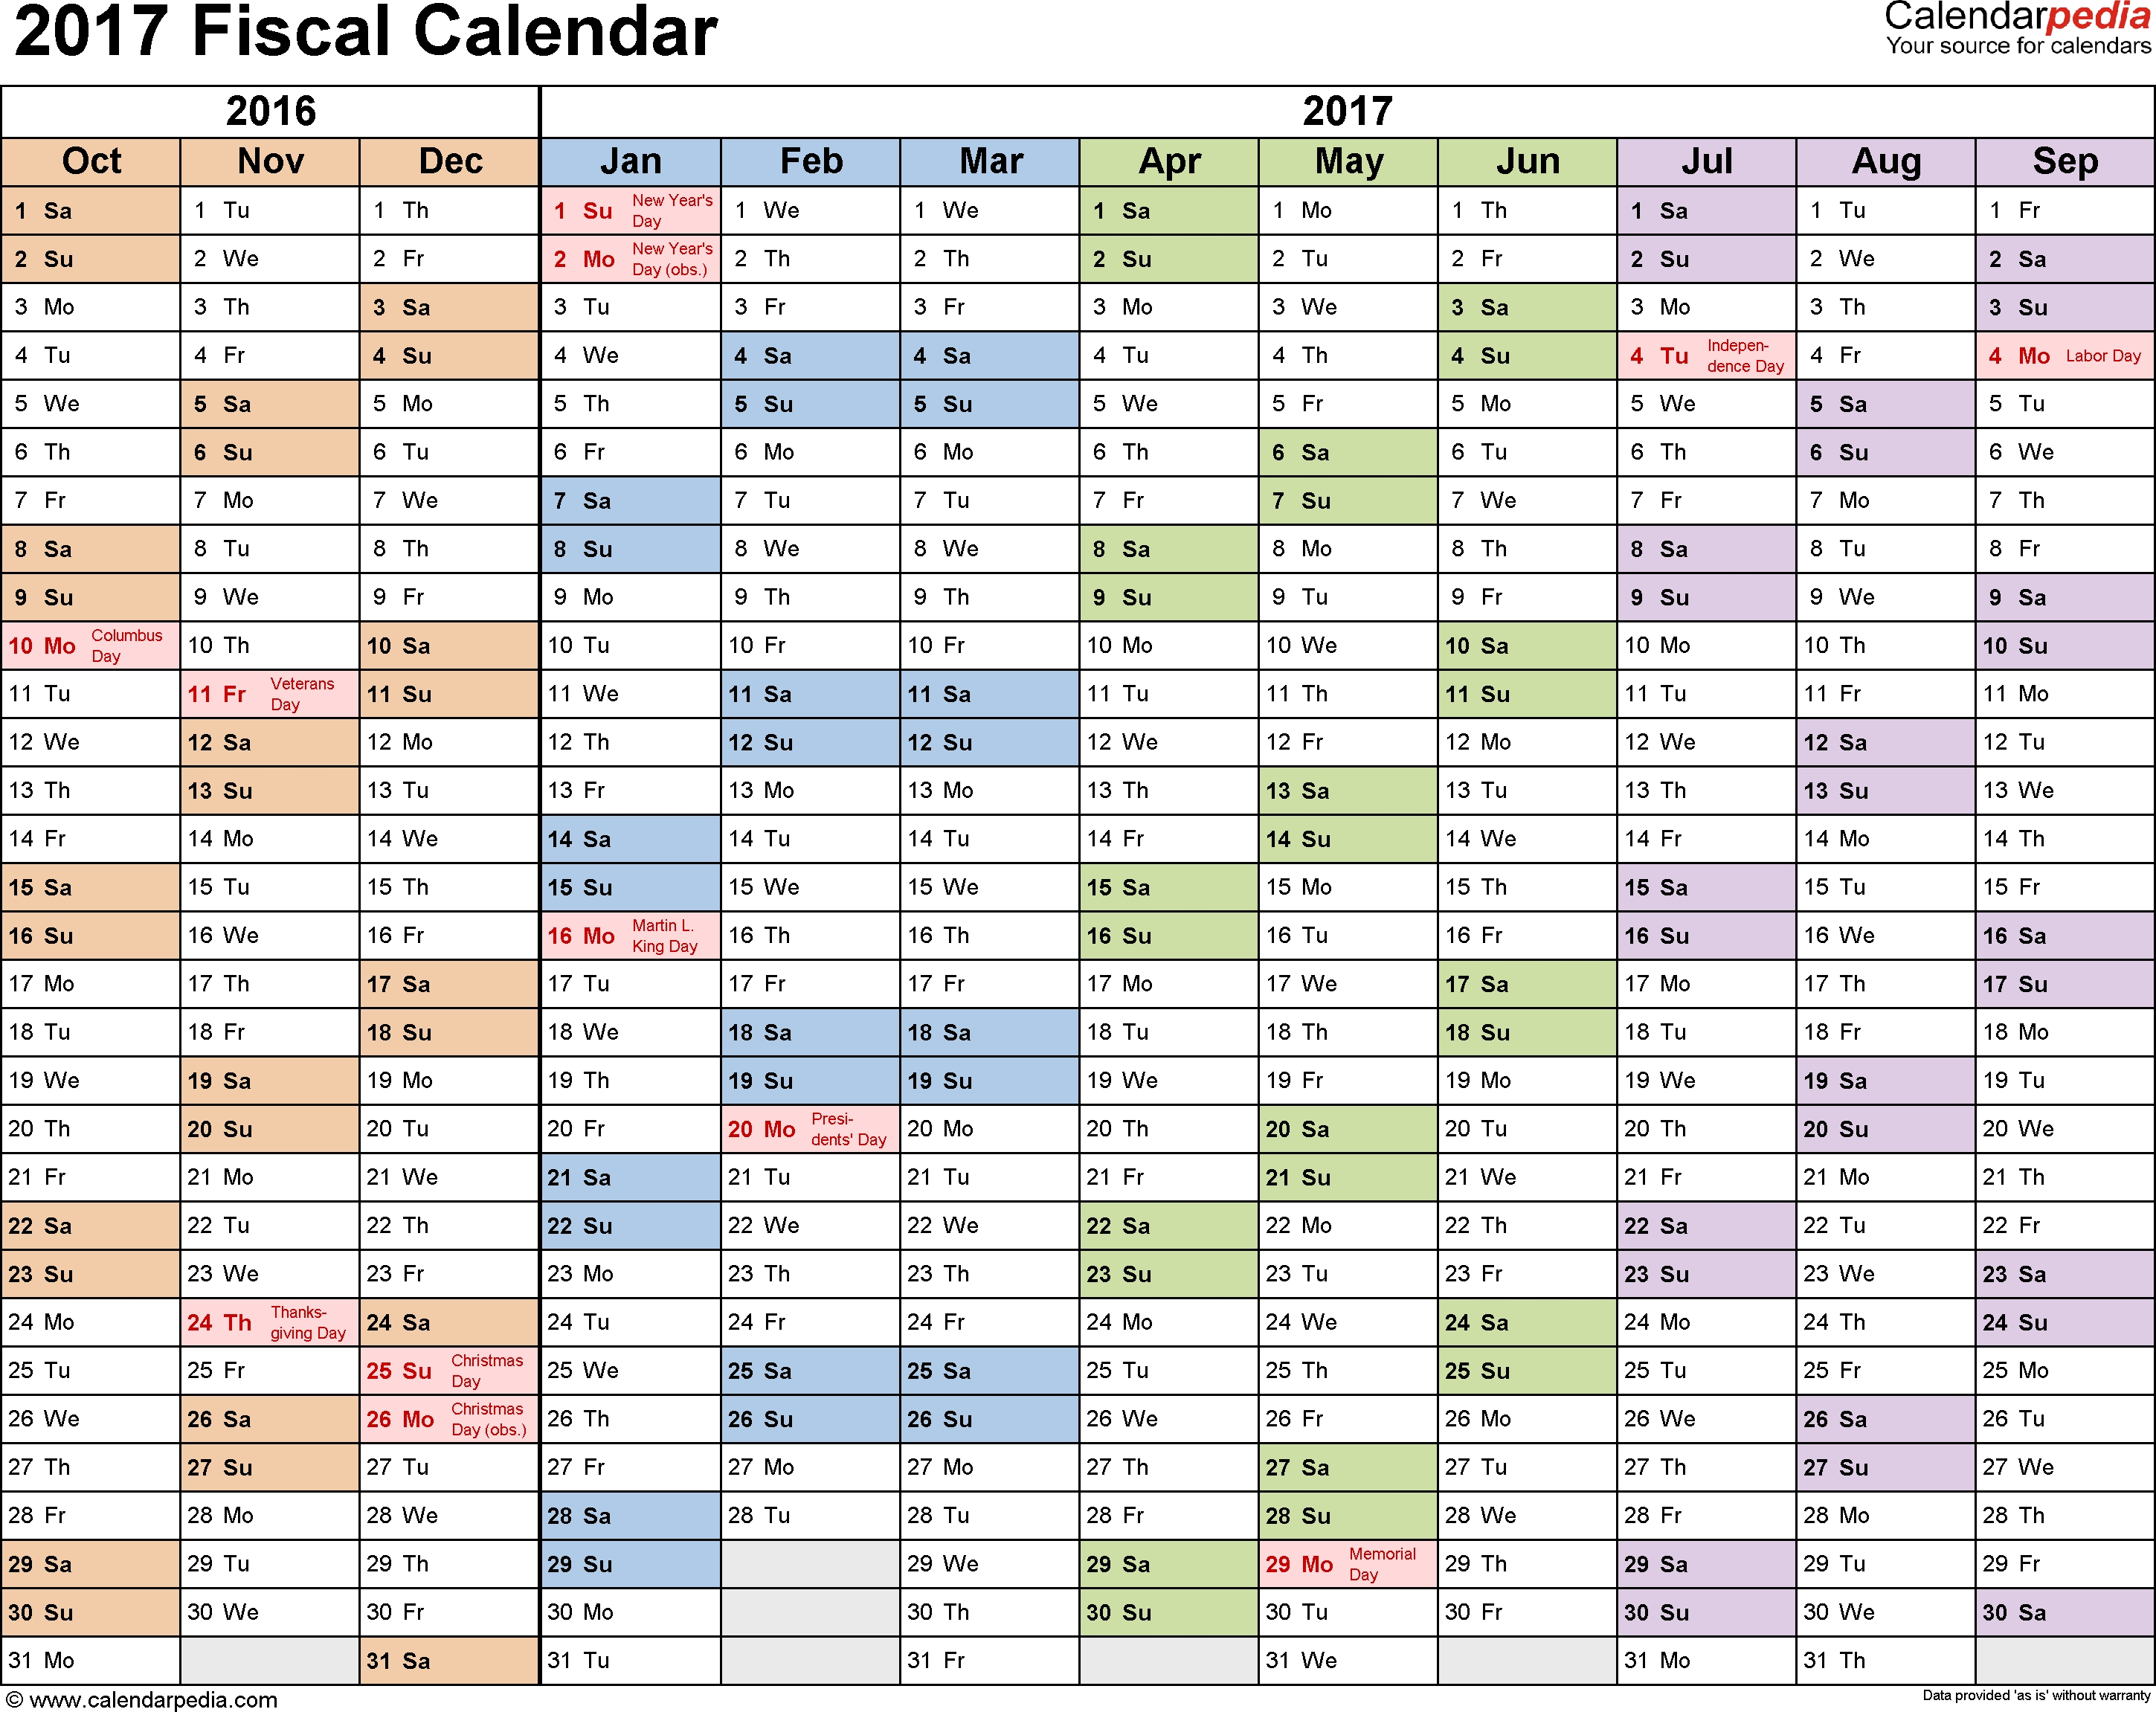 Fiscal Calendars 2017 As Free Printable Word Templates  Australian Financial Year Calendar